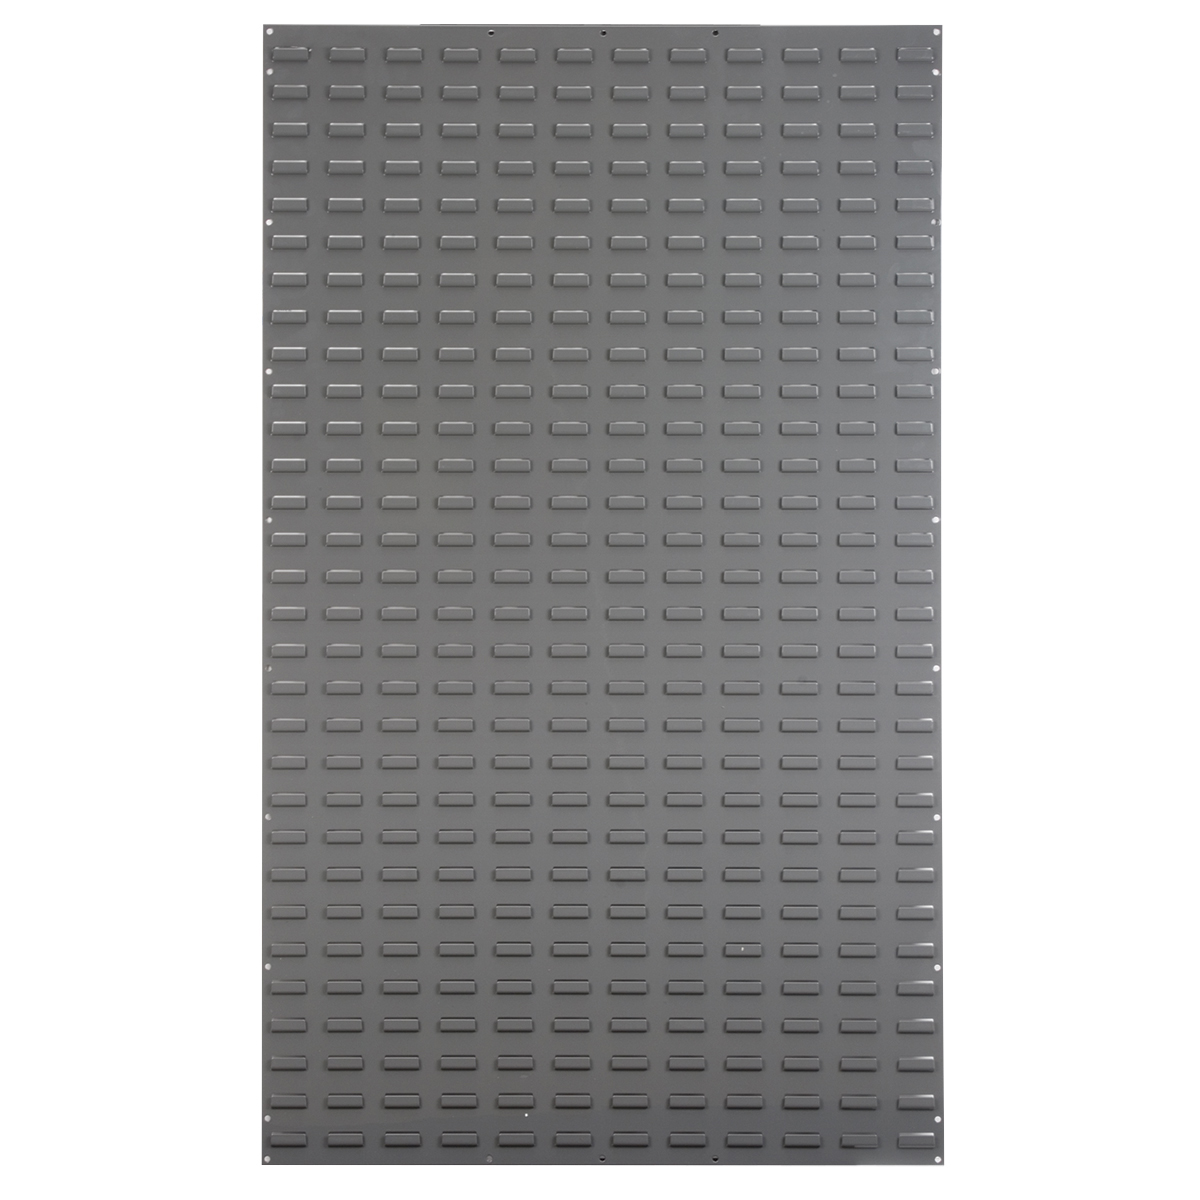 Louvered Wall Panel, 36 x 61, Gray (30161).  This item sold in carton quantities of 1.